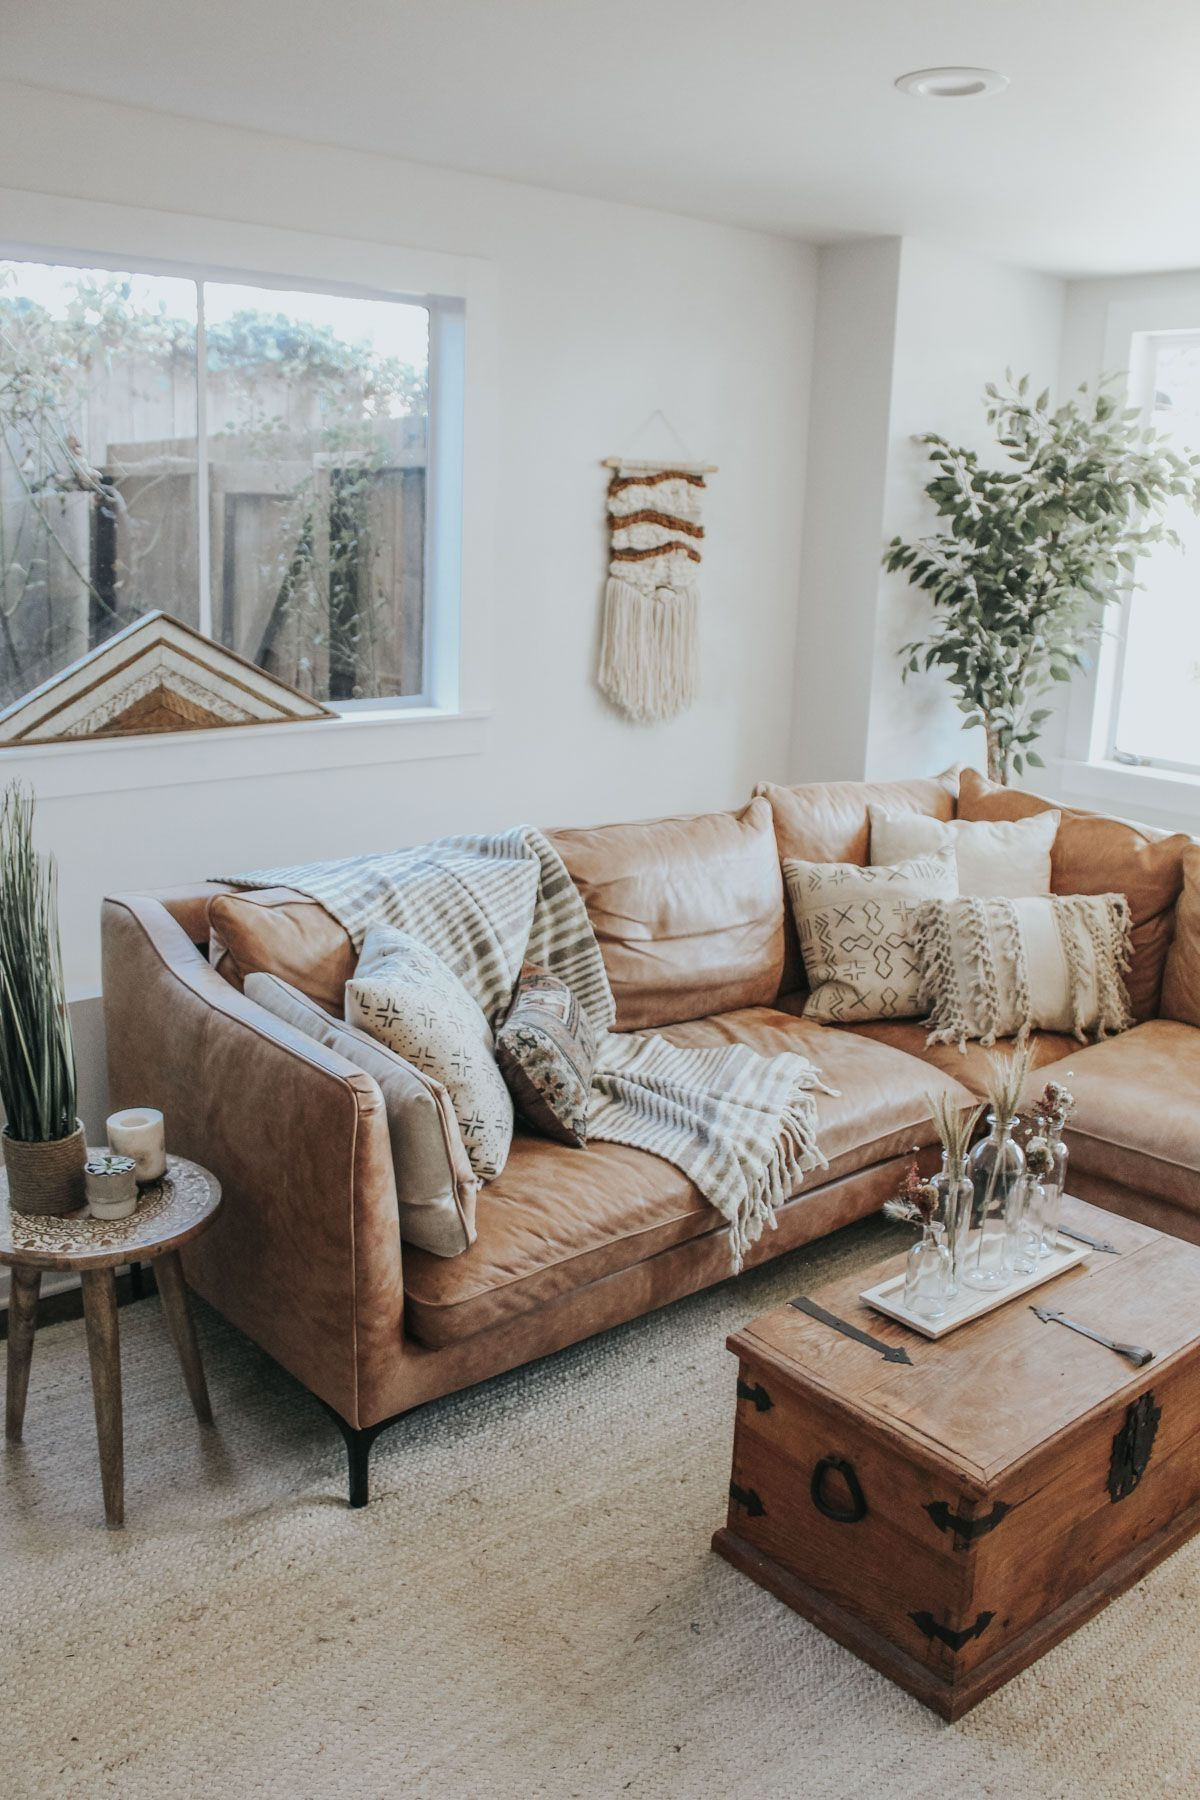 49 ways to make your house cozy for the holiday in 2020 on cozy apartment living room decorating ideas the easy way to look at your living room id=67235